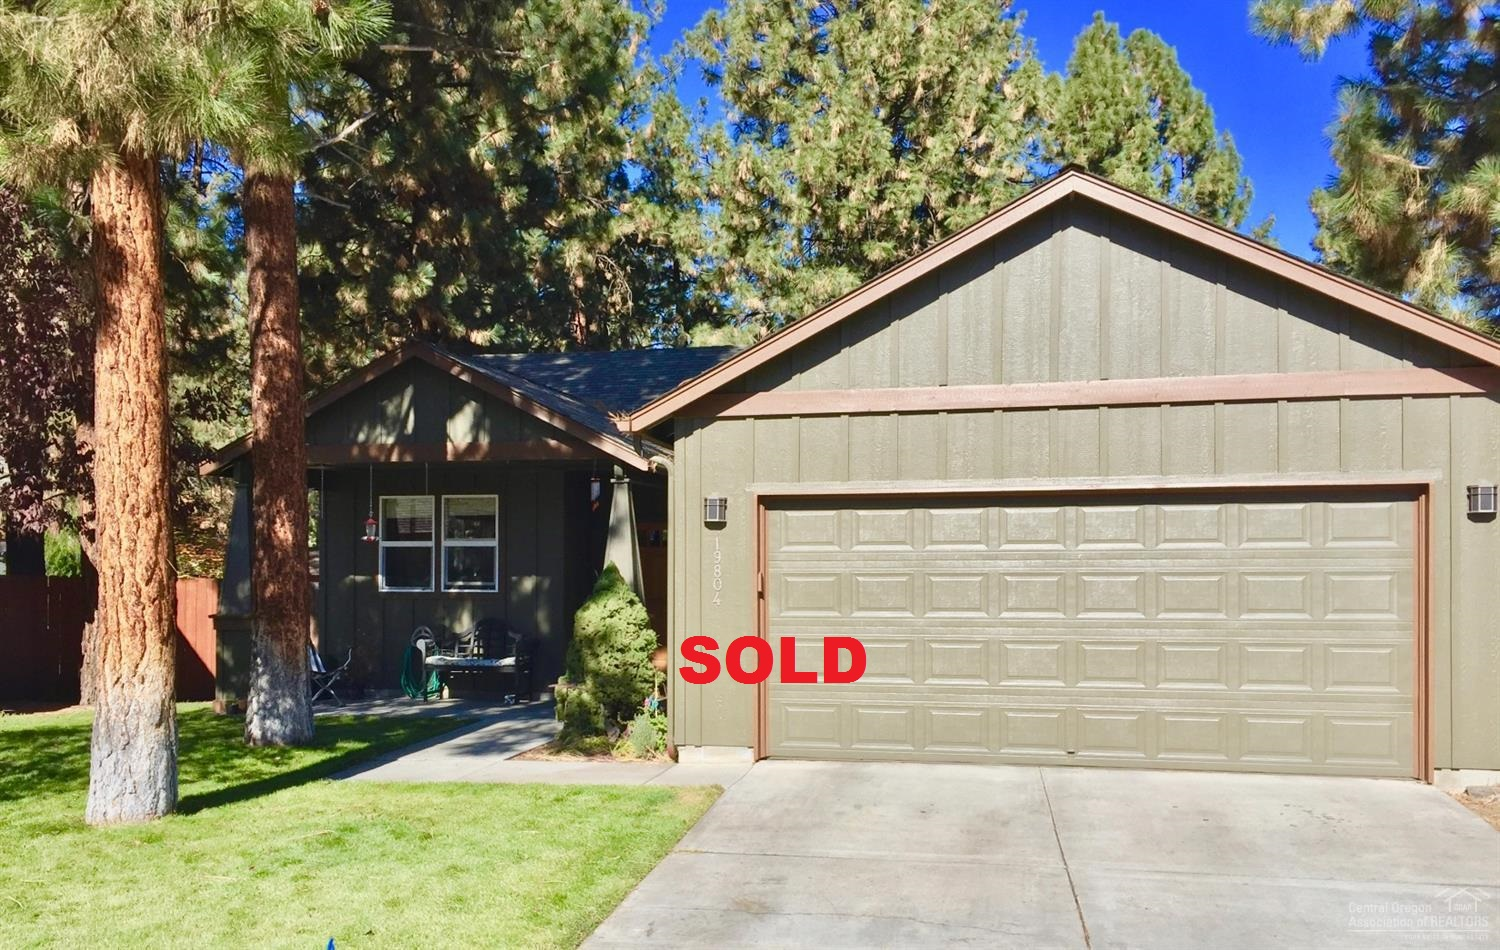 Sold!19804 Wetland Ct. - $297,000This SW Bend Craftsman, well maintained investment property went pending with a full price offer in 5 DAYS. Closed in less than 25 days!